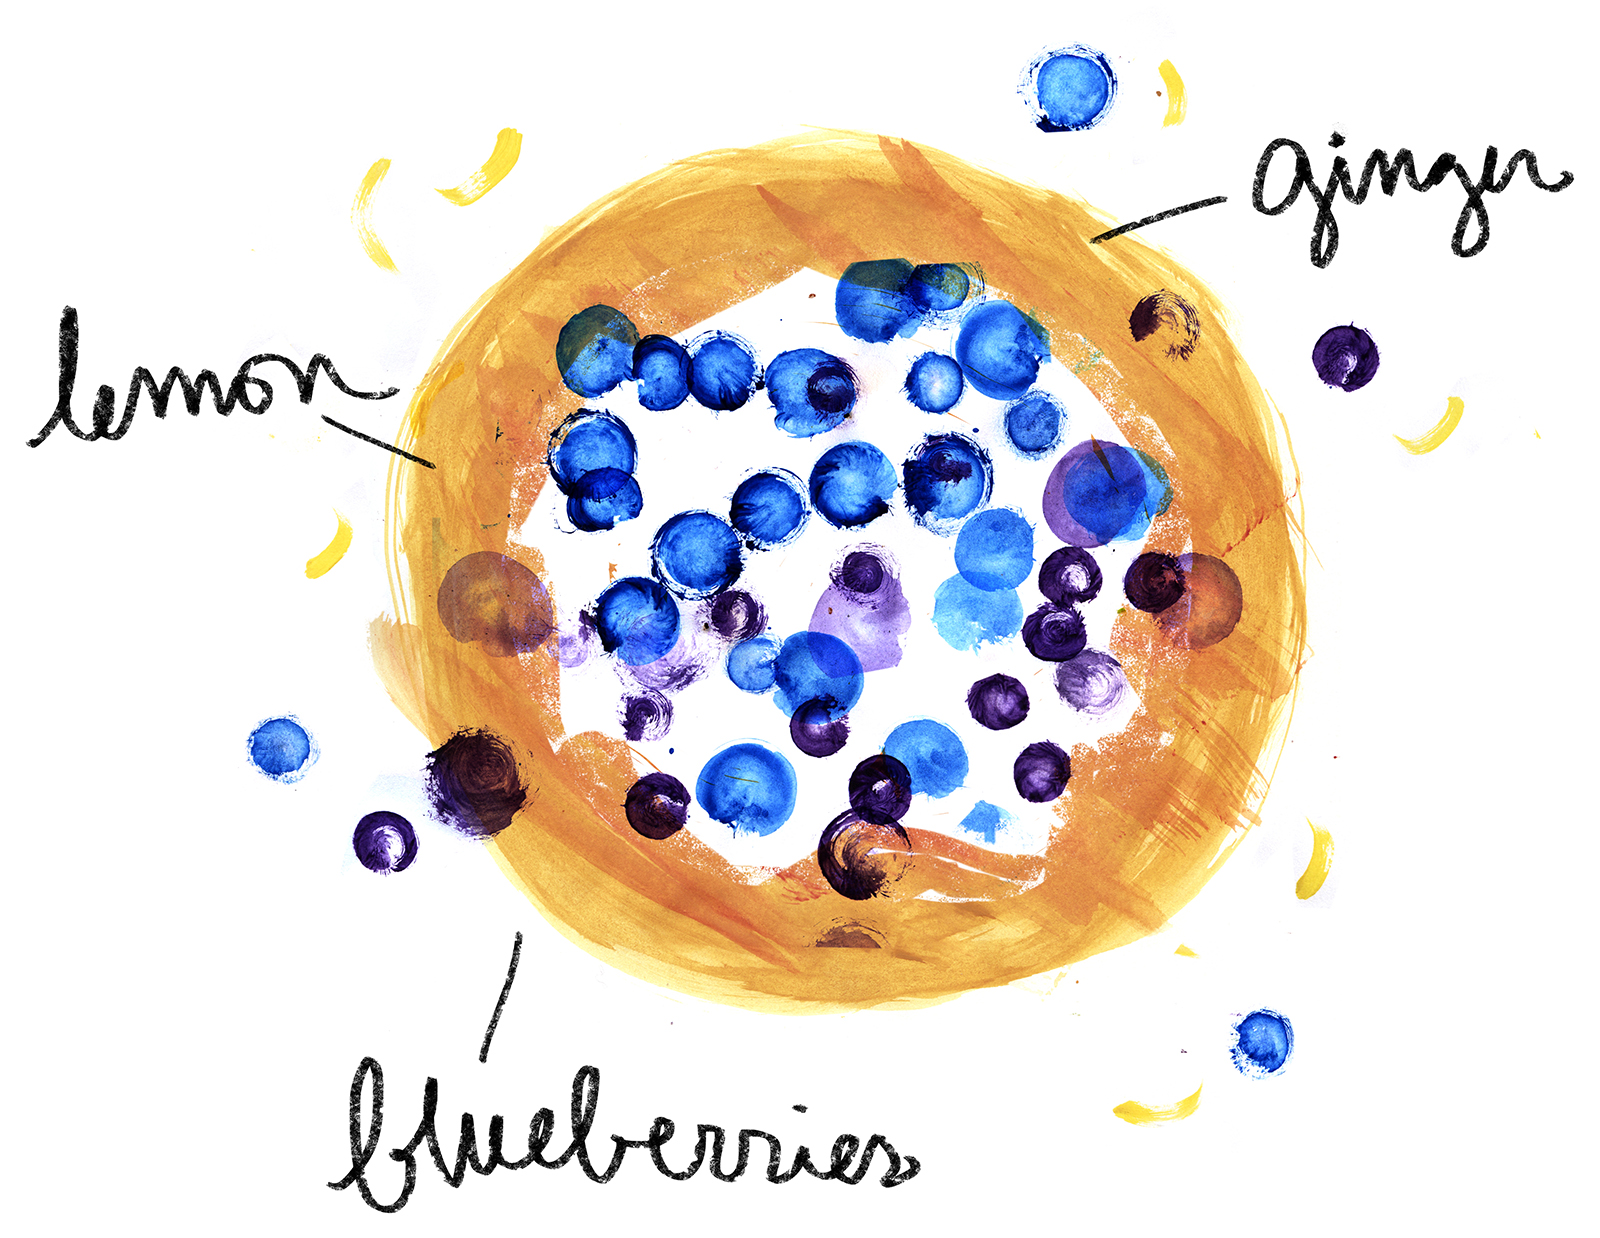 blueberry galette recipe lauren monaco illustration